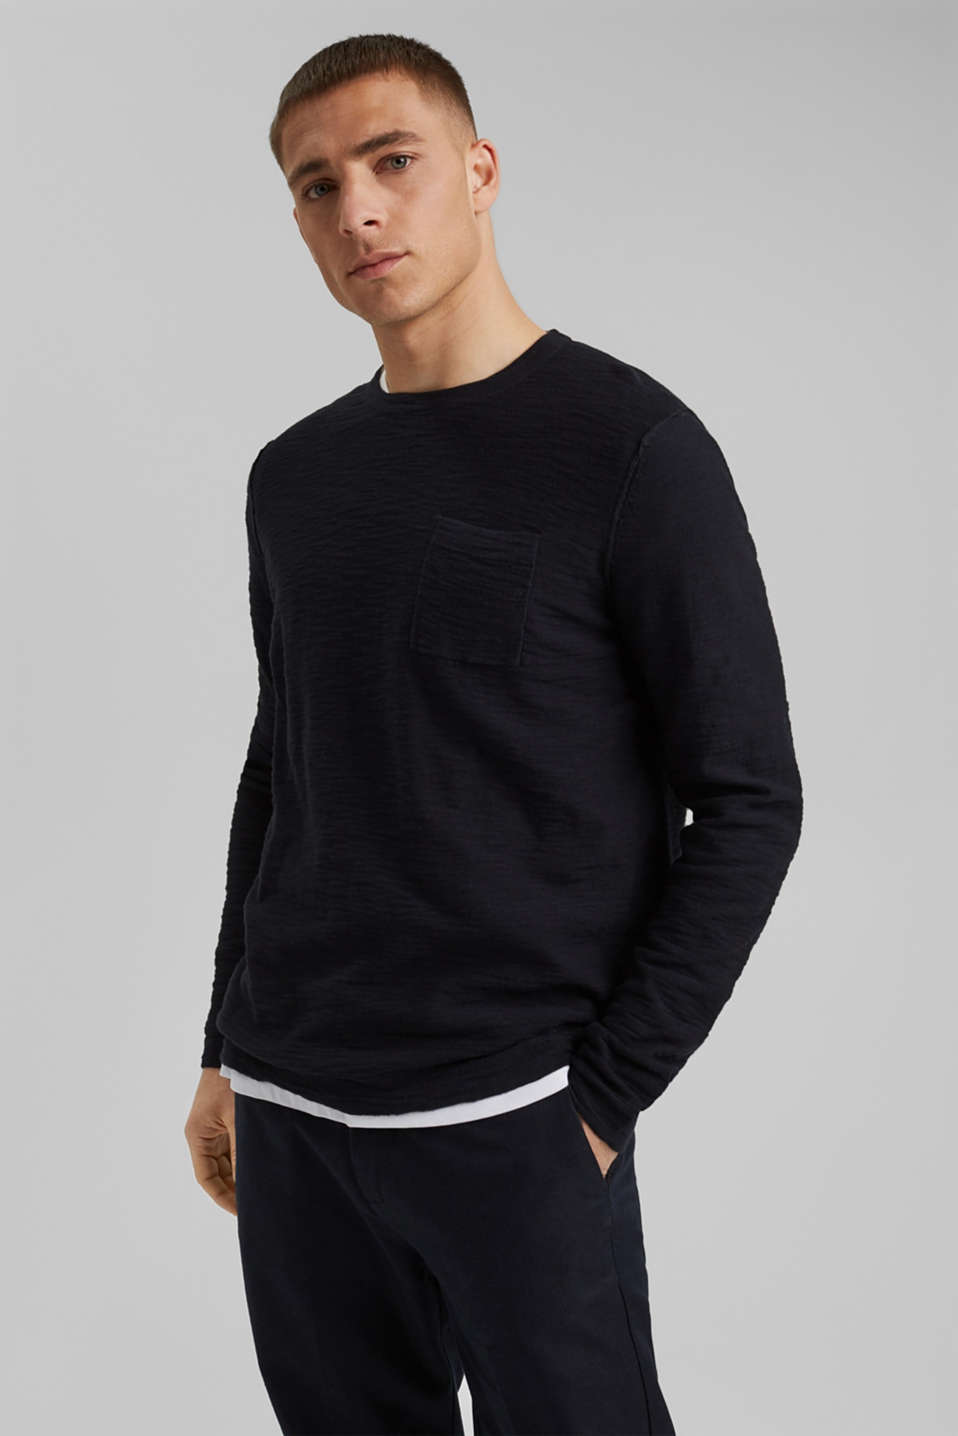 Esprit - Jumper with texture, 100% organic cotton